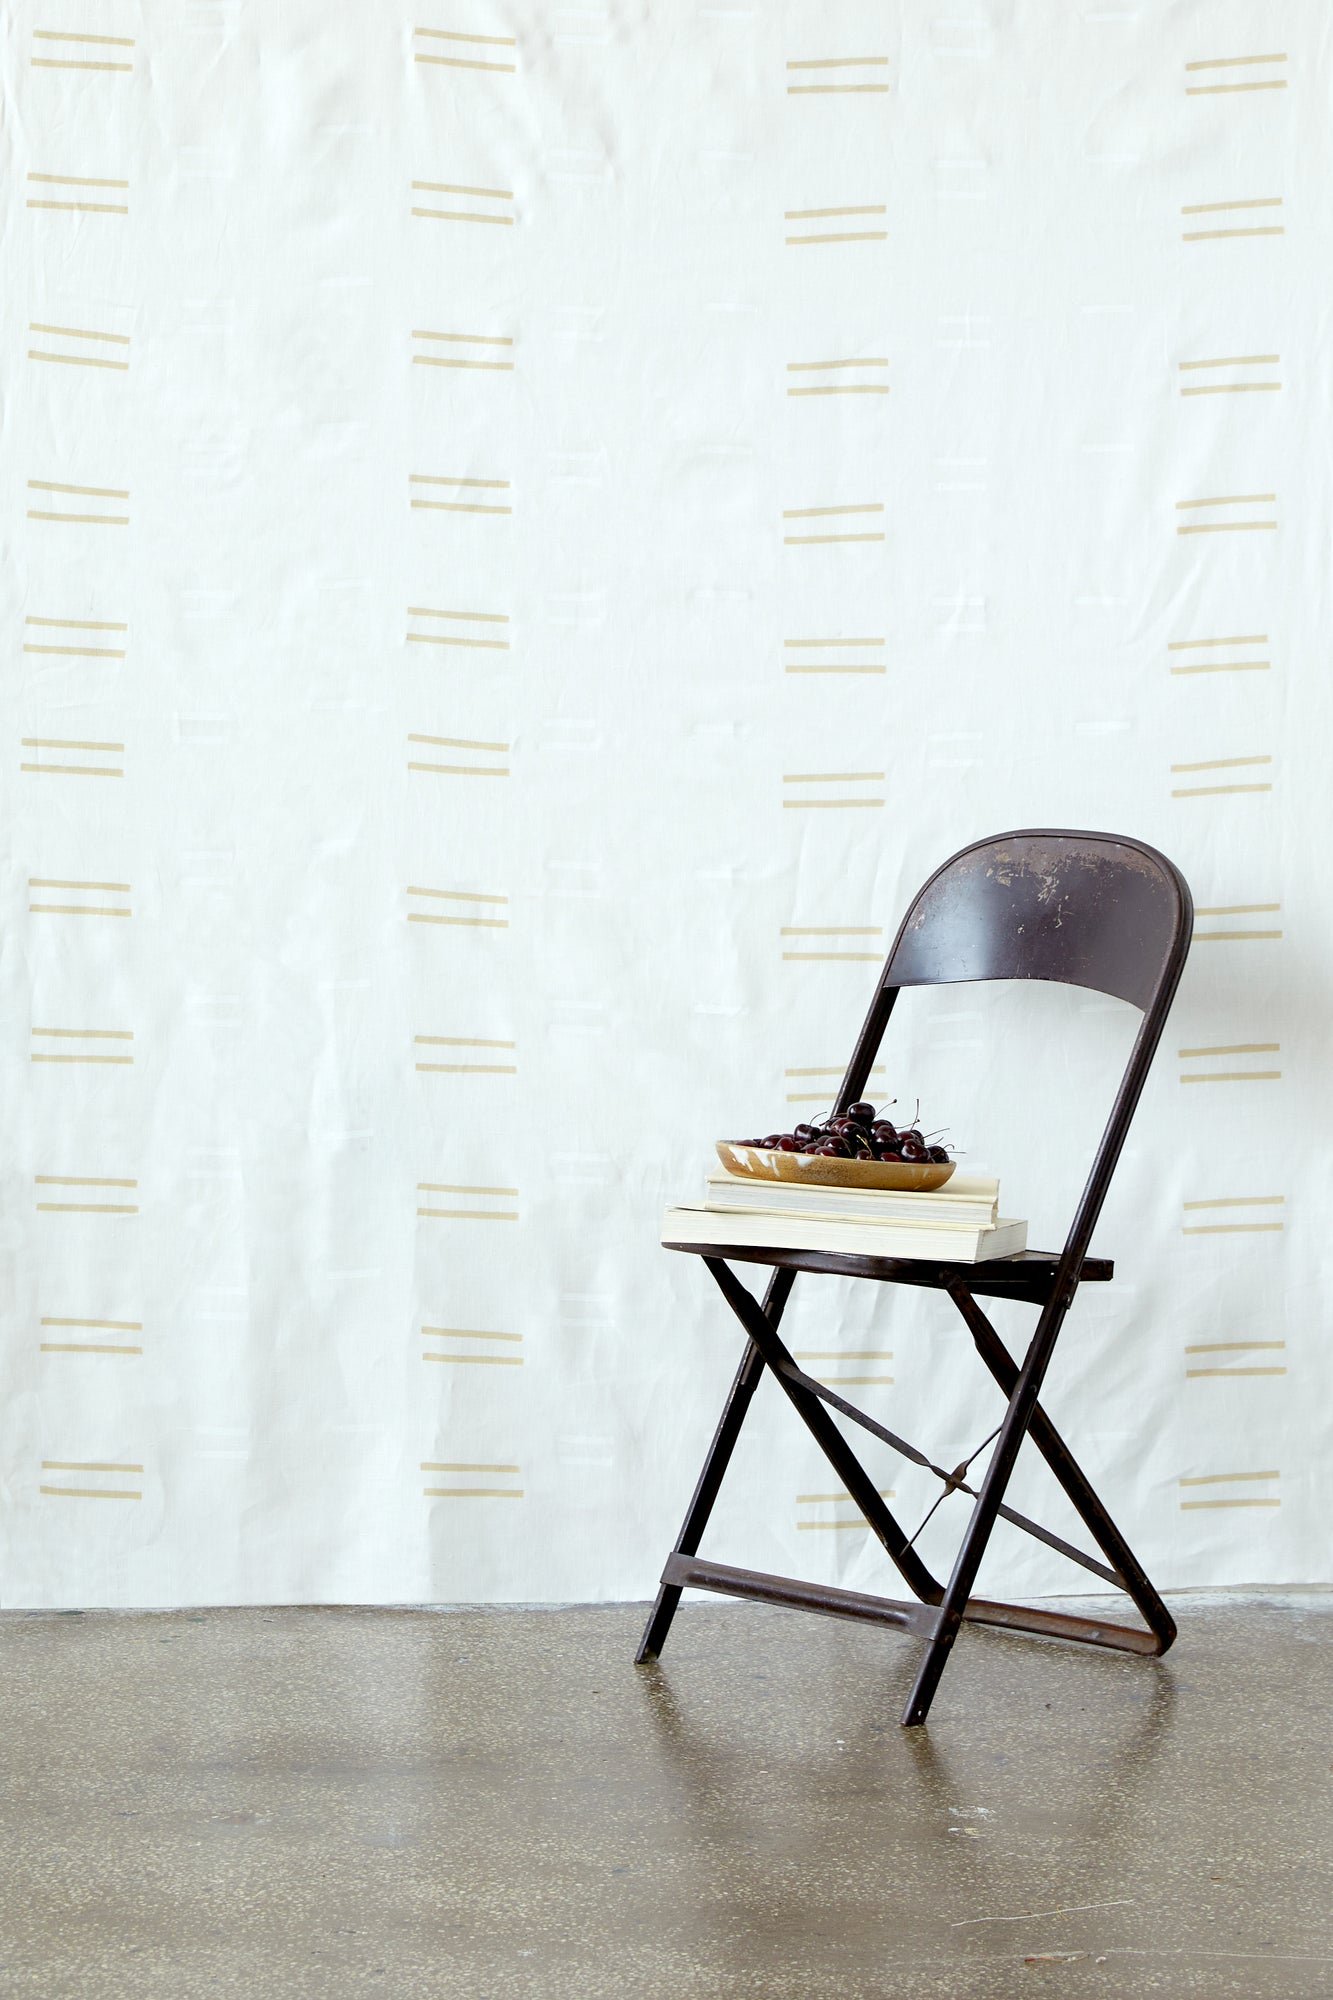 Oaxaca Maize on White - Fabric By The Yard